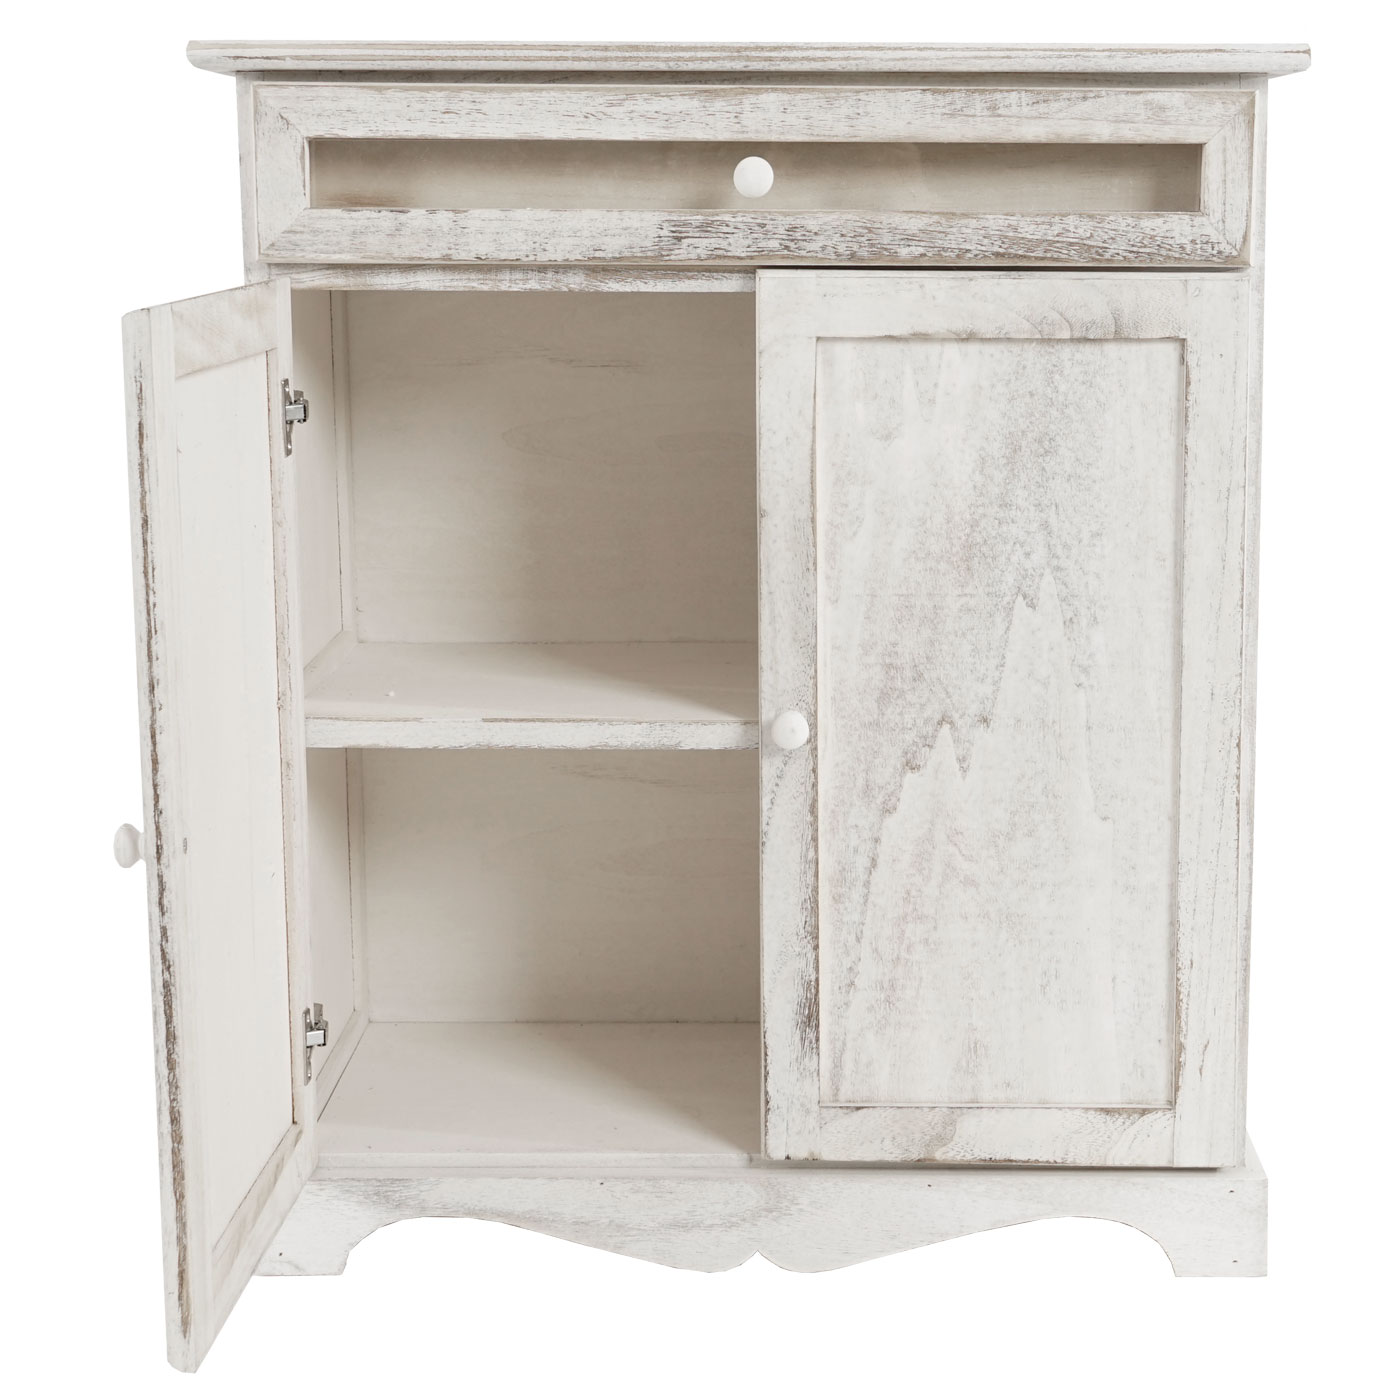 Weisser Schrank. Awesome With Weisser Schrank. Affordable Full Size ...